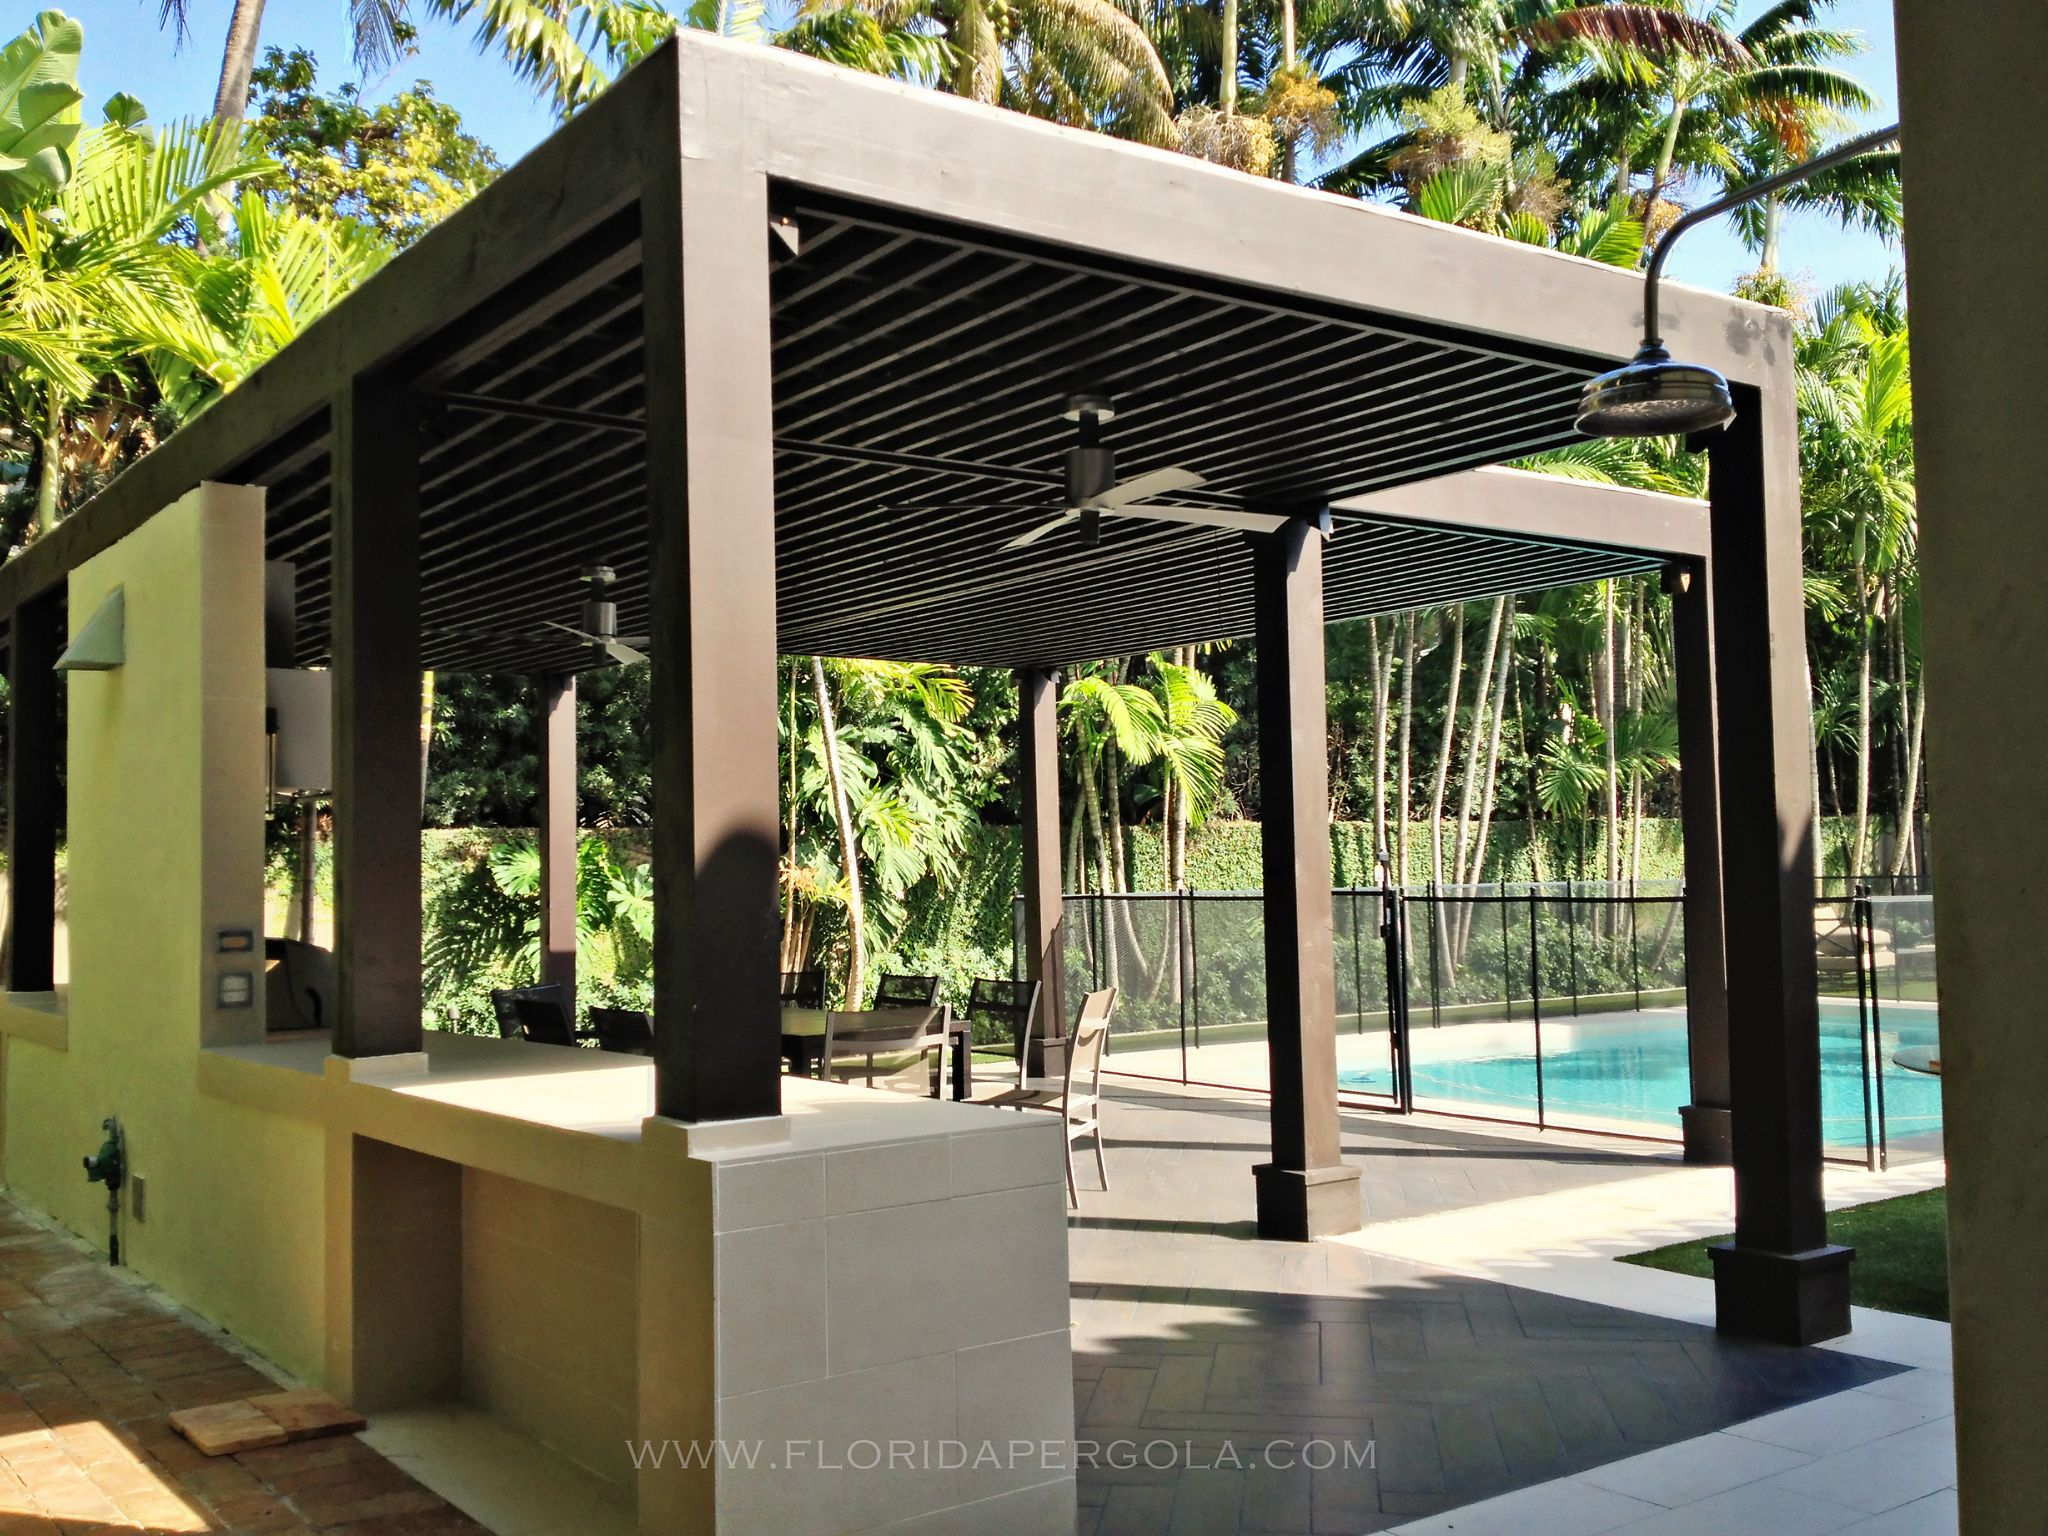 florida pergola specializing in landscape structures. Black Bedroom Furniture Sets. Home Design Ideas